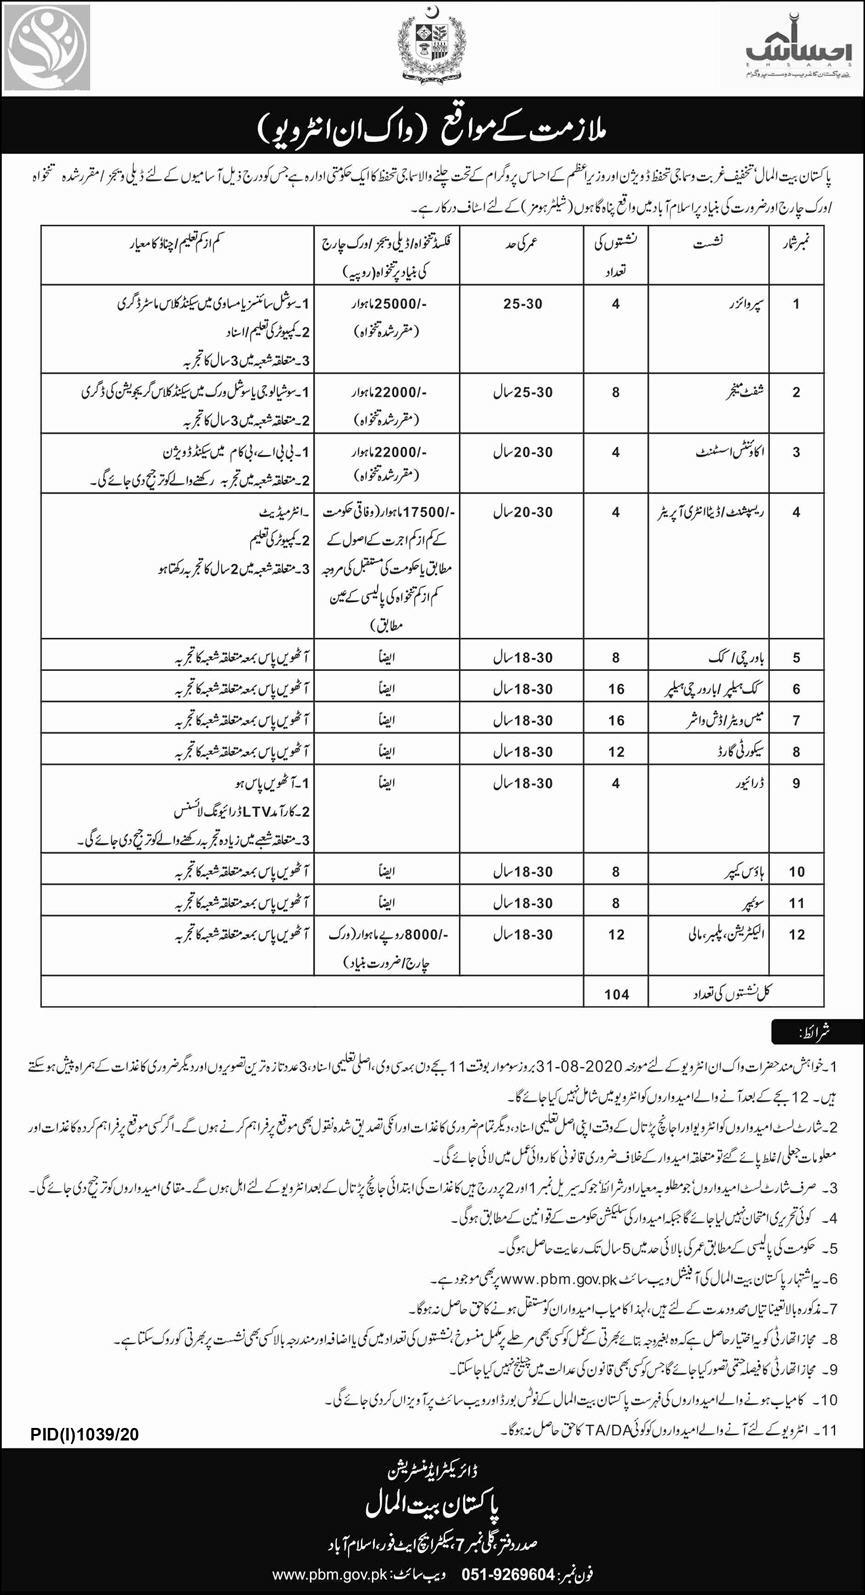 Pakistan Bait ul Mal Jobs August 2020